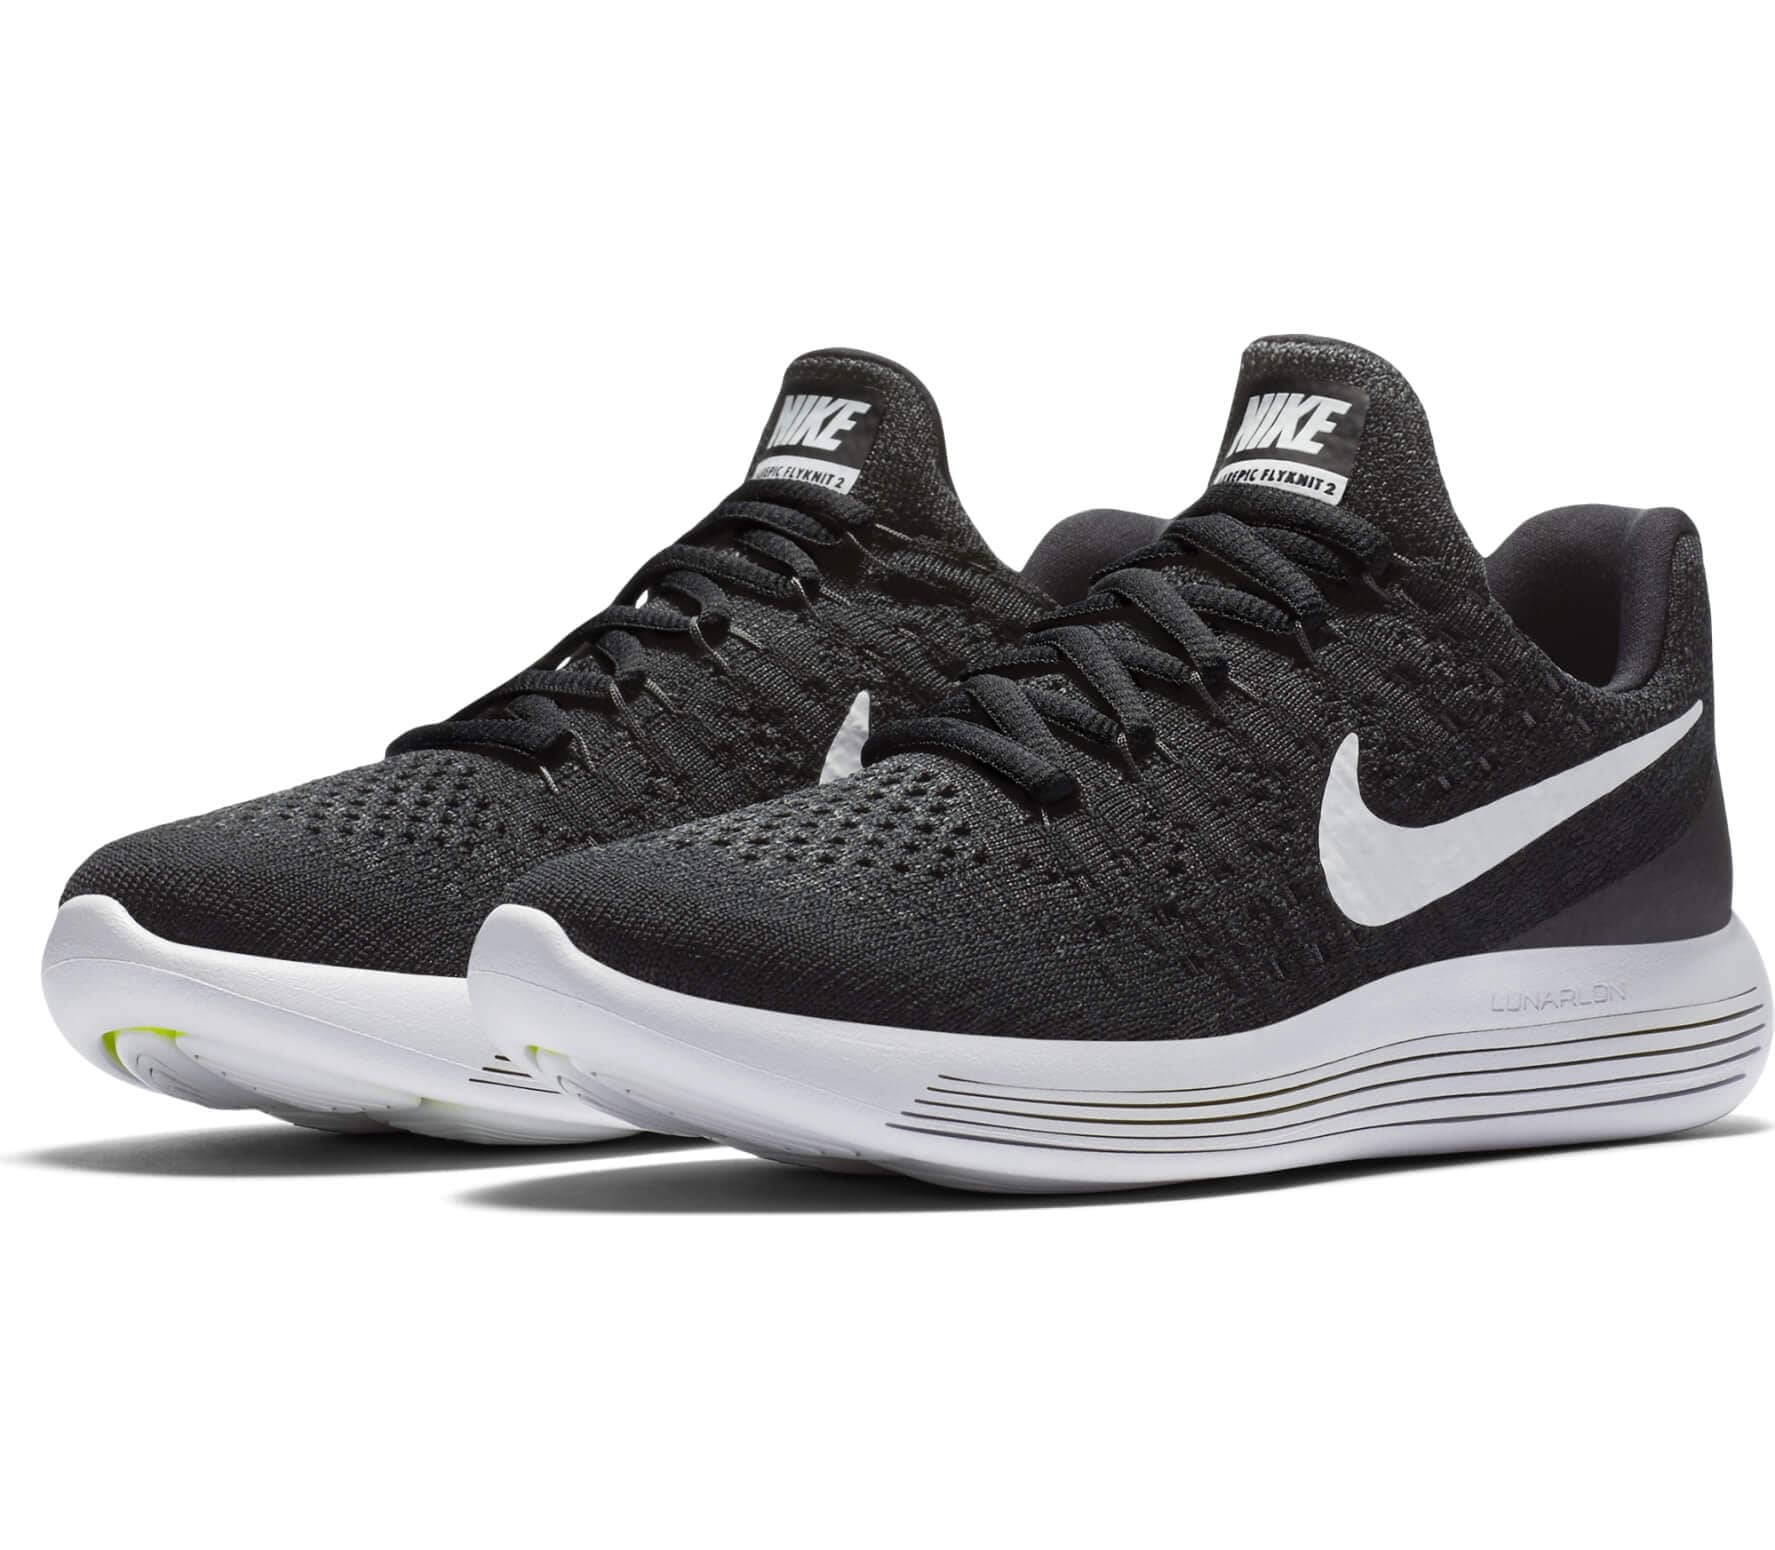 info for b5a3d a688e Nike Lunar Epic Low Flyknit 2 Children black